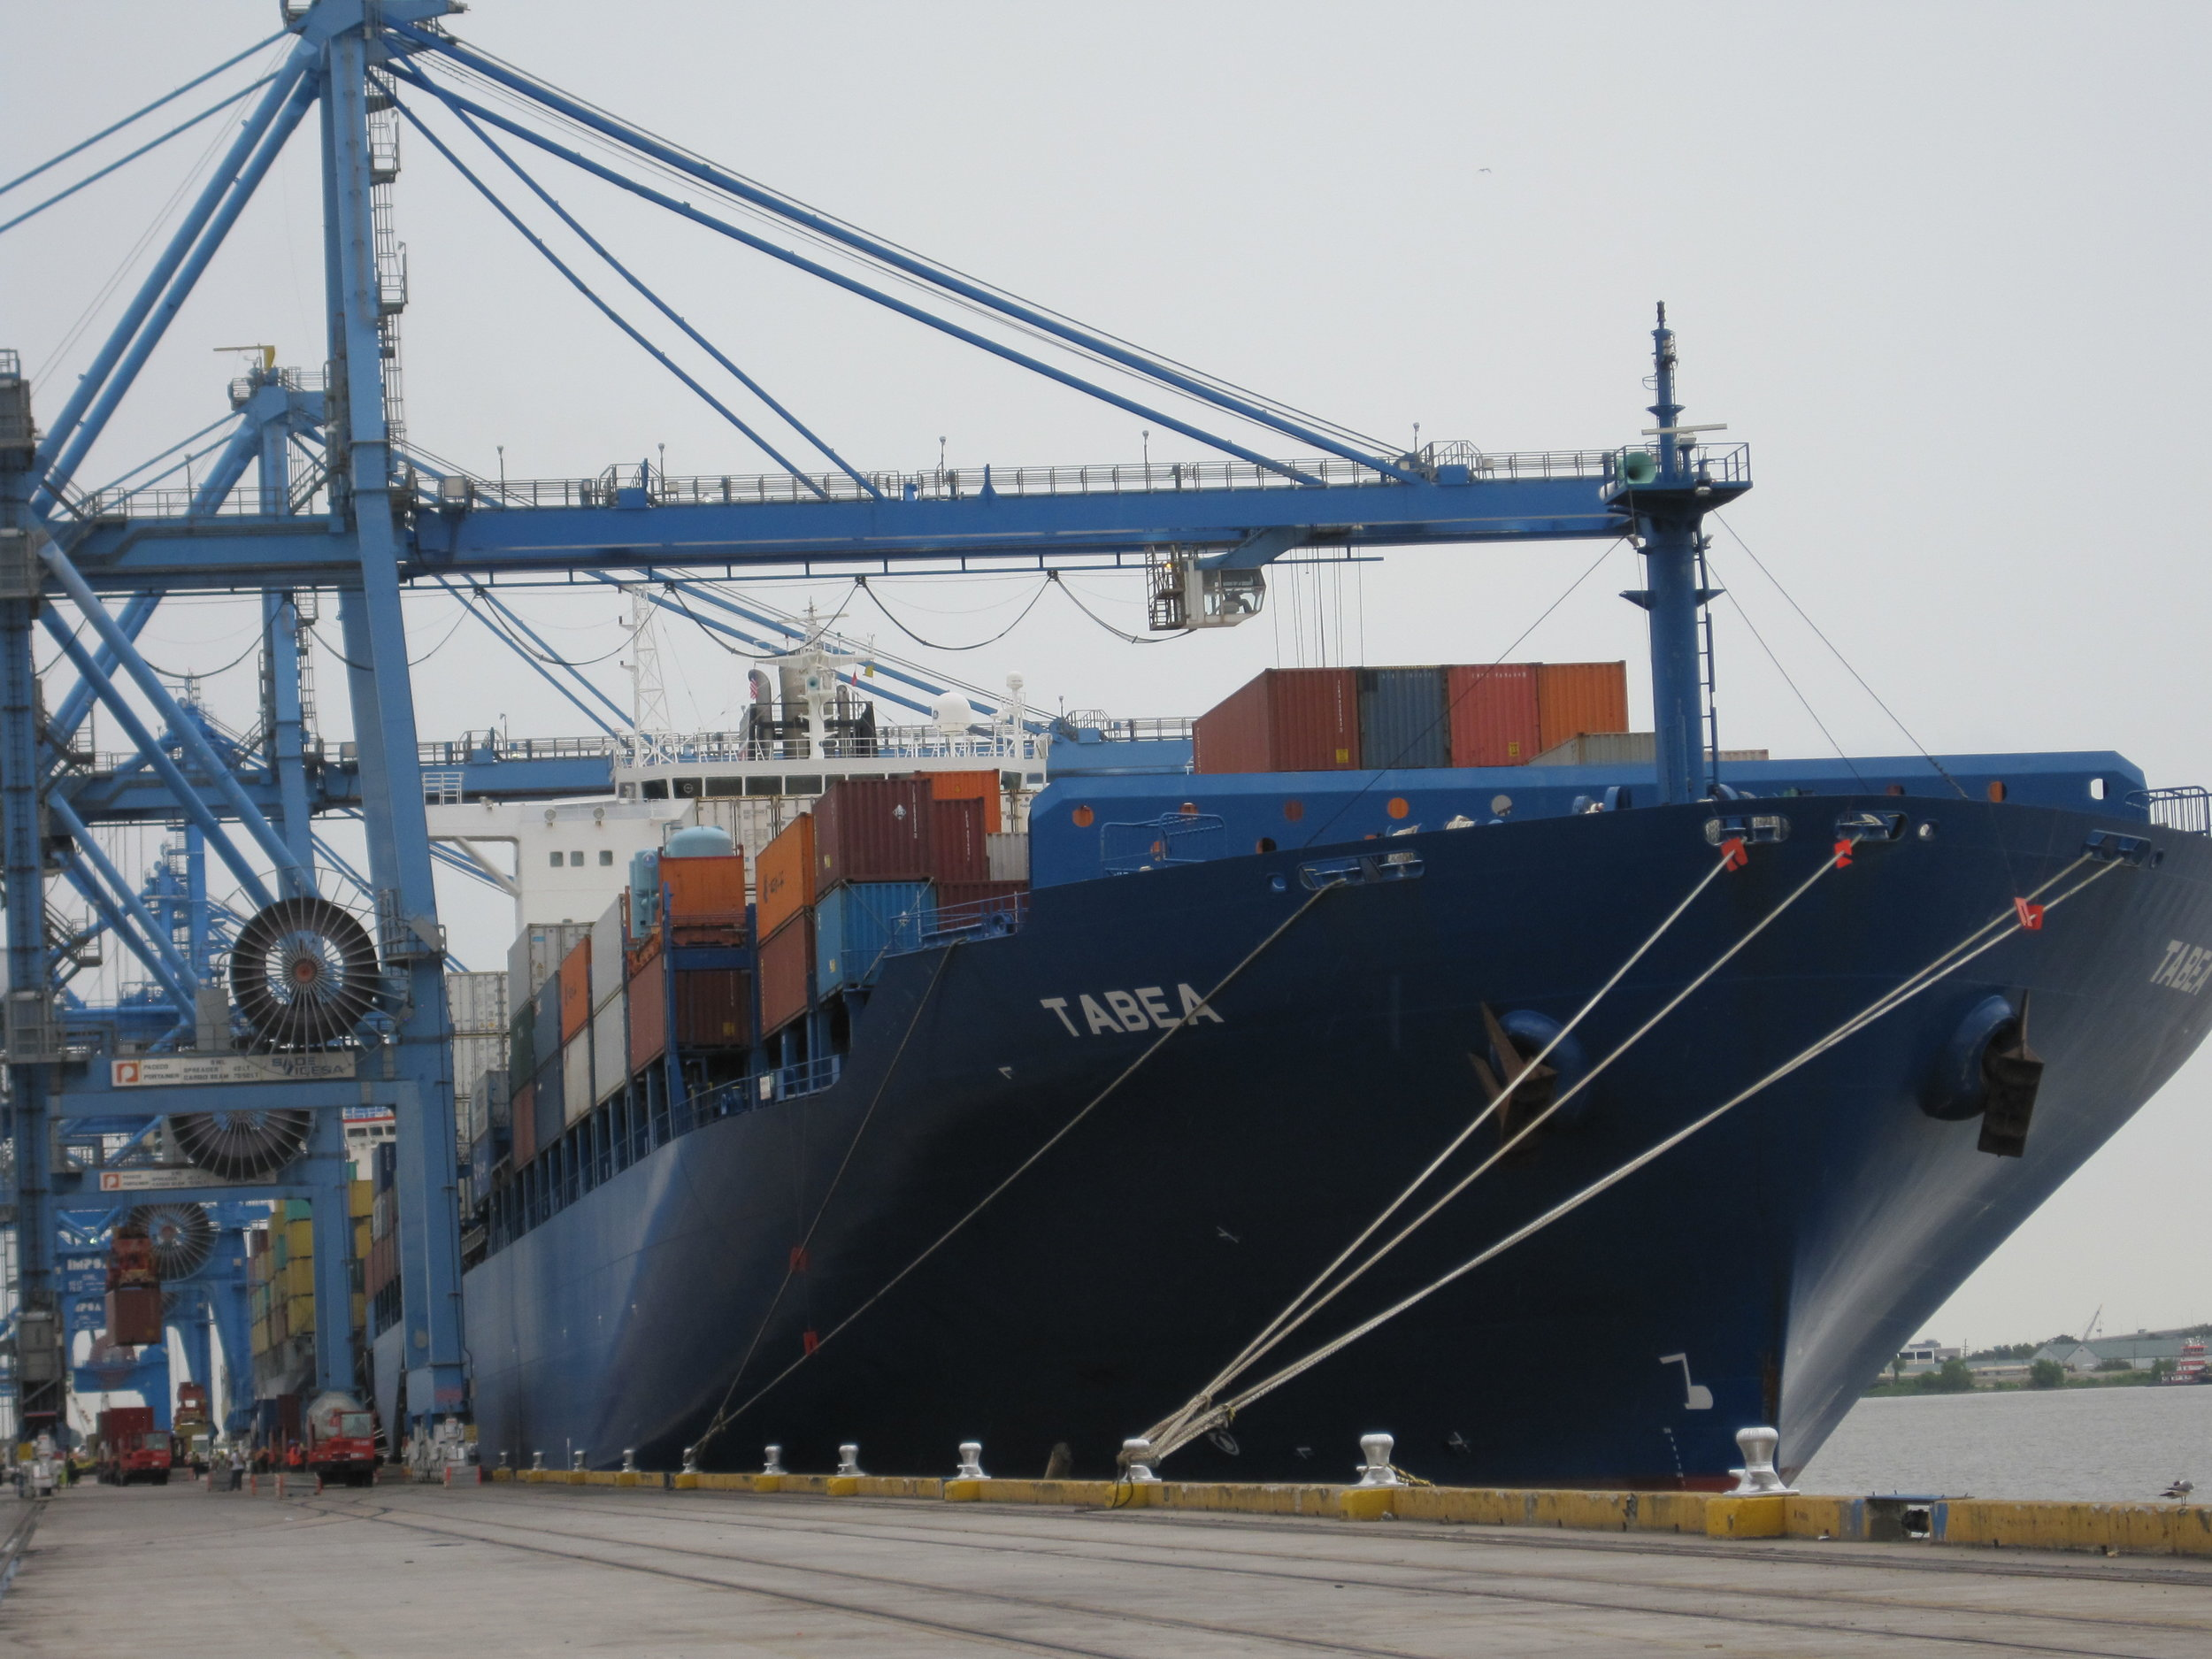 Cargo ship in port of New Orleans. Image by United Soybean Board.